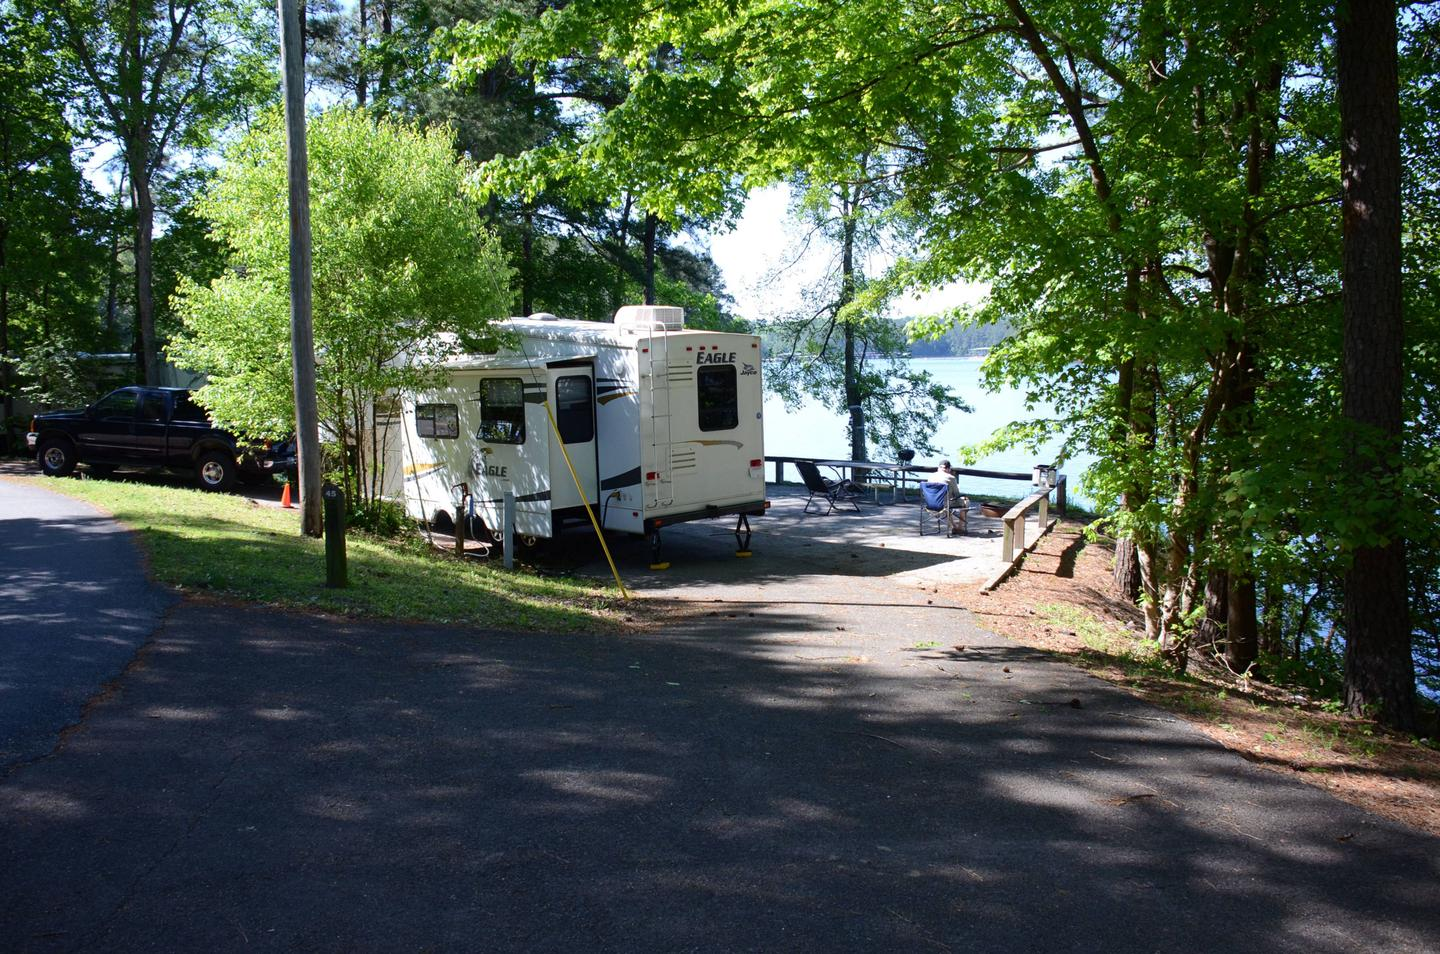 Pull-thru entrance, driveway slope, utilities-side clearance.McKinney Campground, campsite 45.